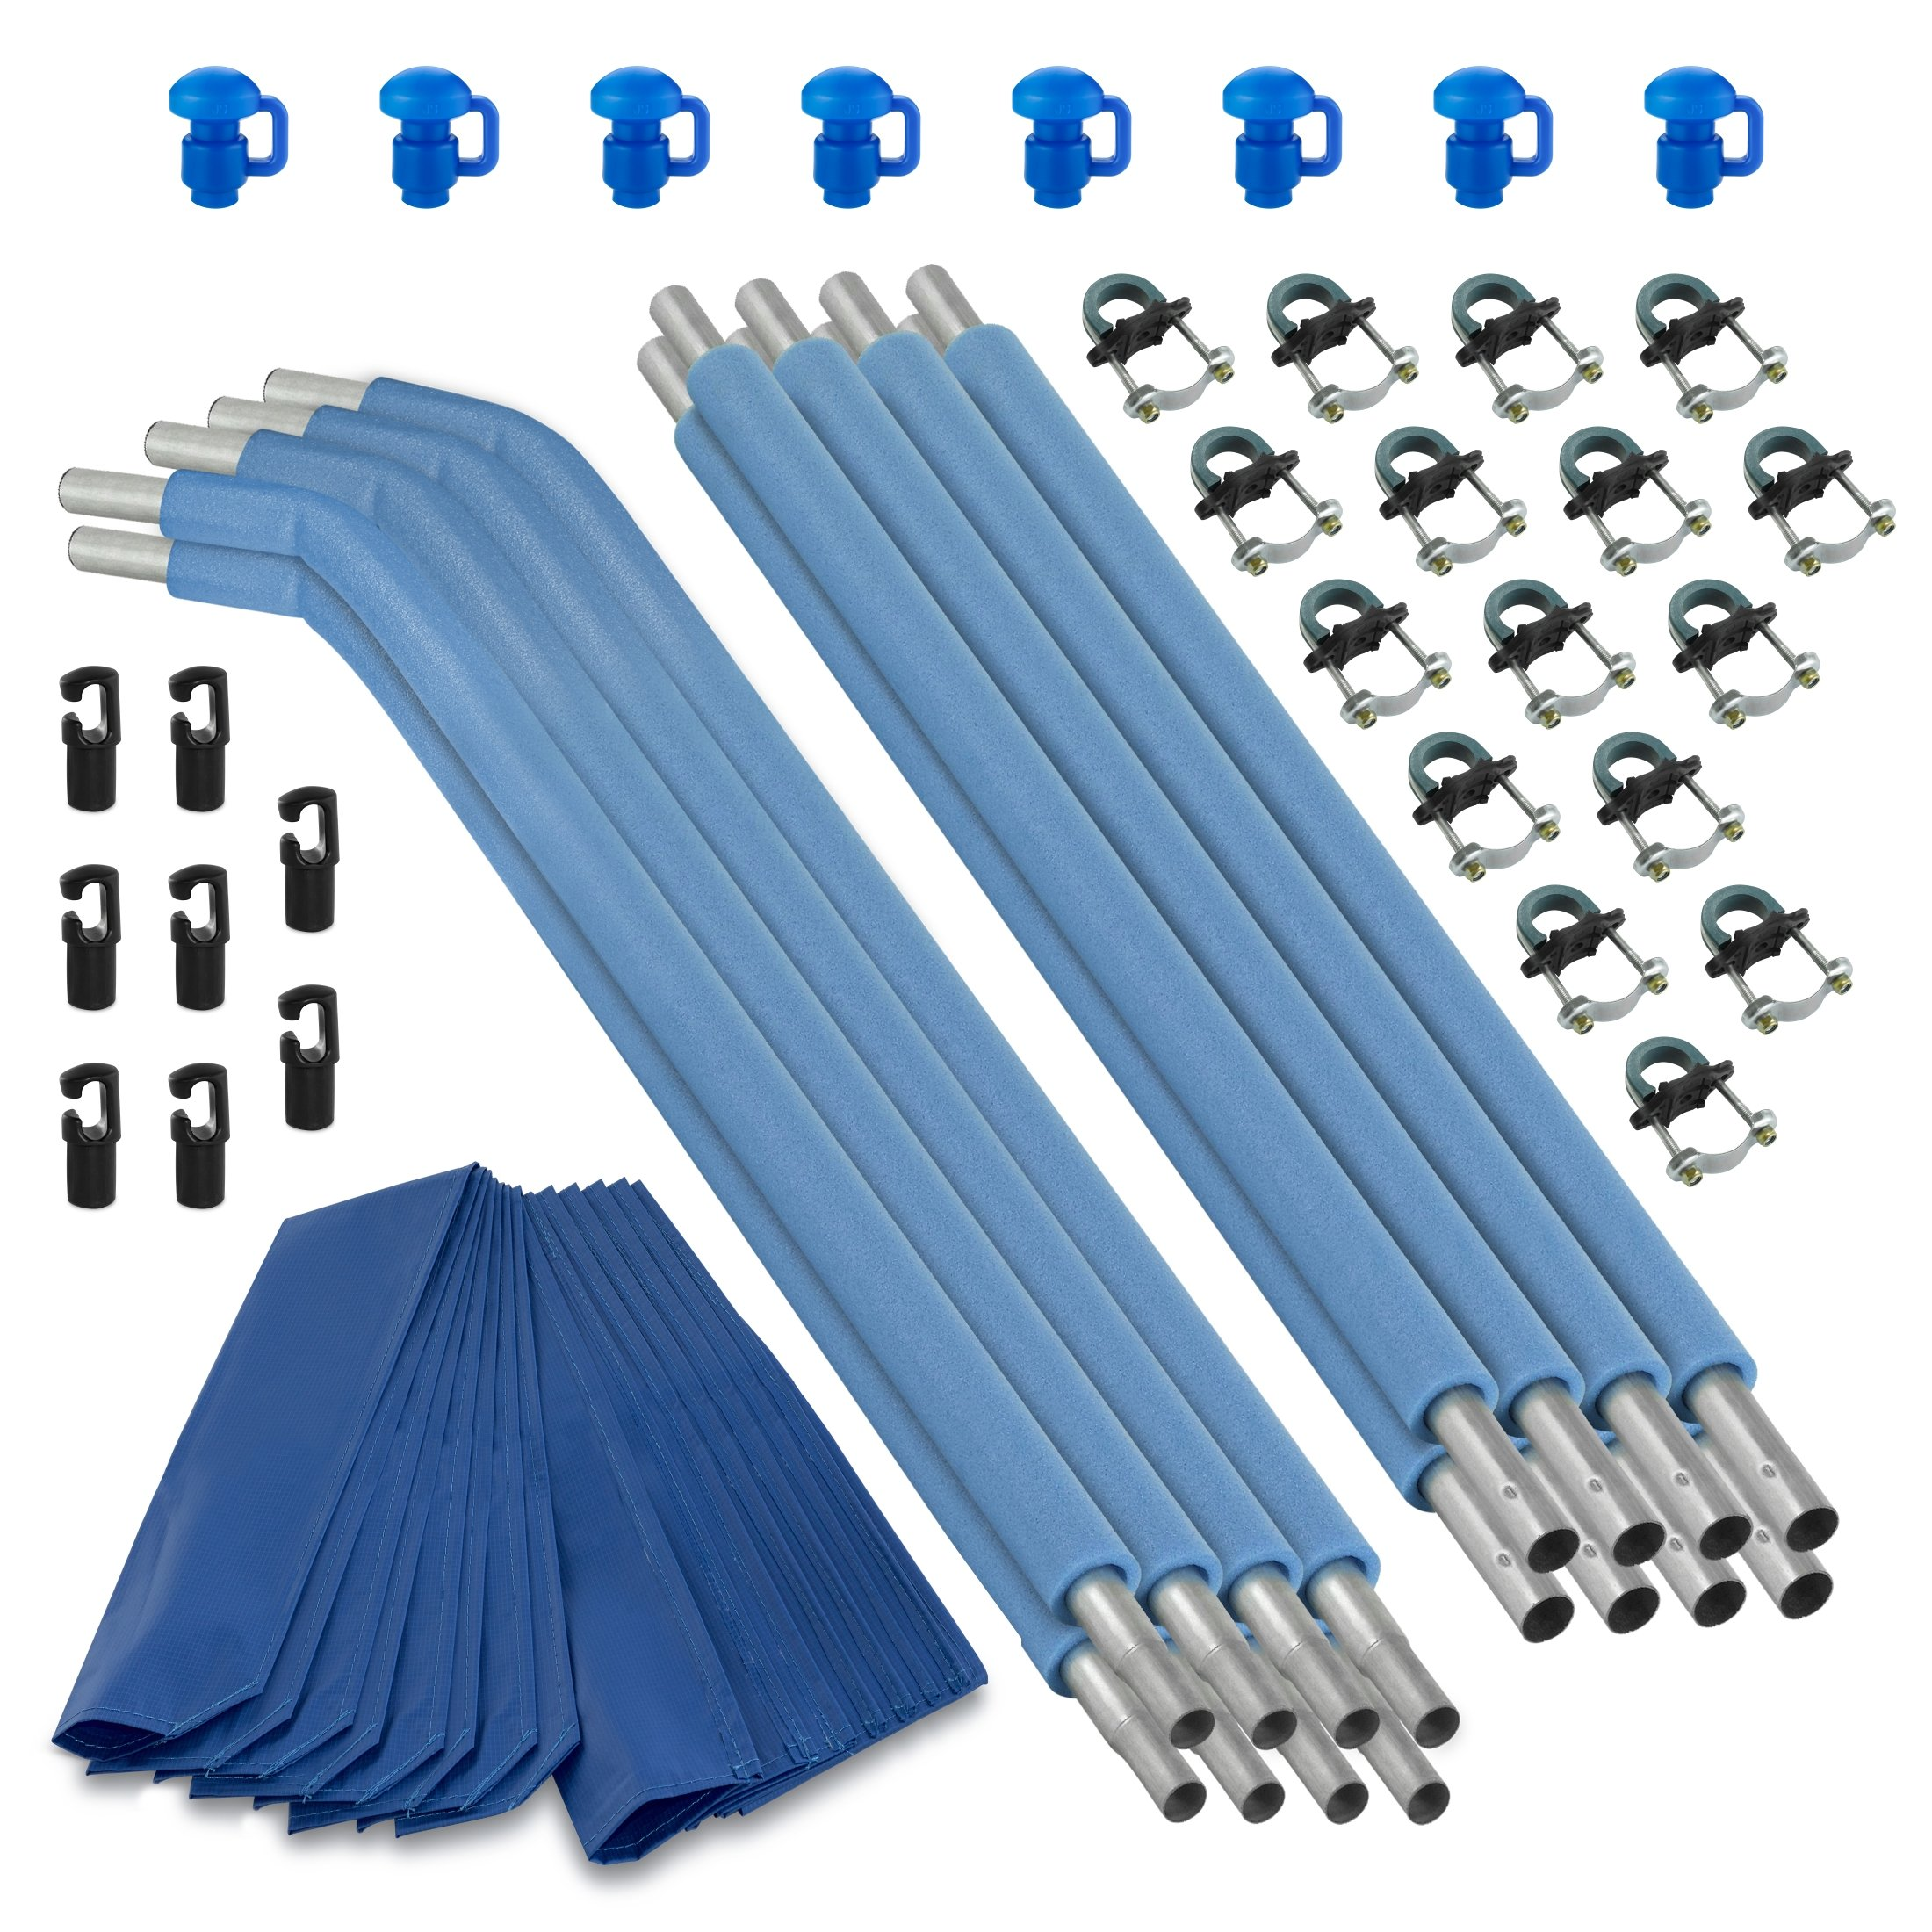 Upper Bounce Trampoline Replacement Enclosure Poles & Hardware (8 Set), Blue by Upper Bounce